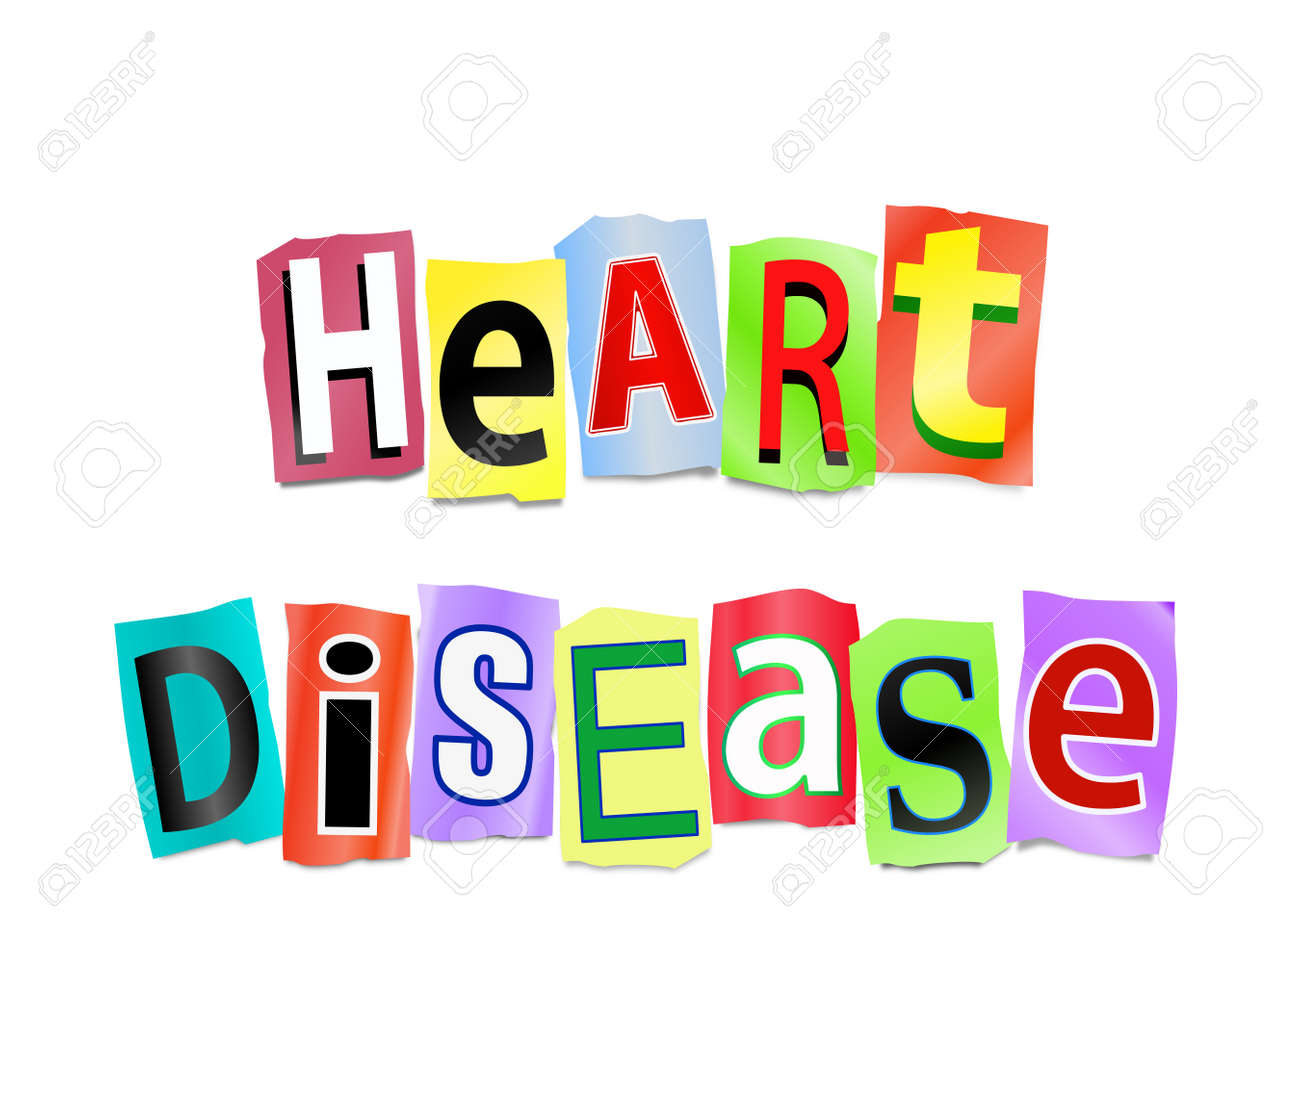 illustration illustration depicting cutout printed letters arranged to form the words heart disease